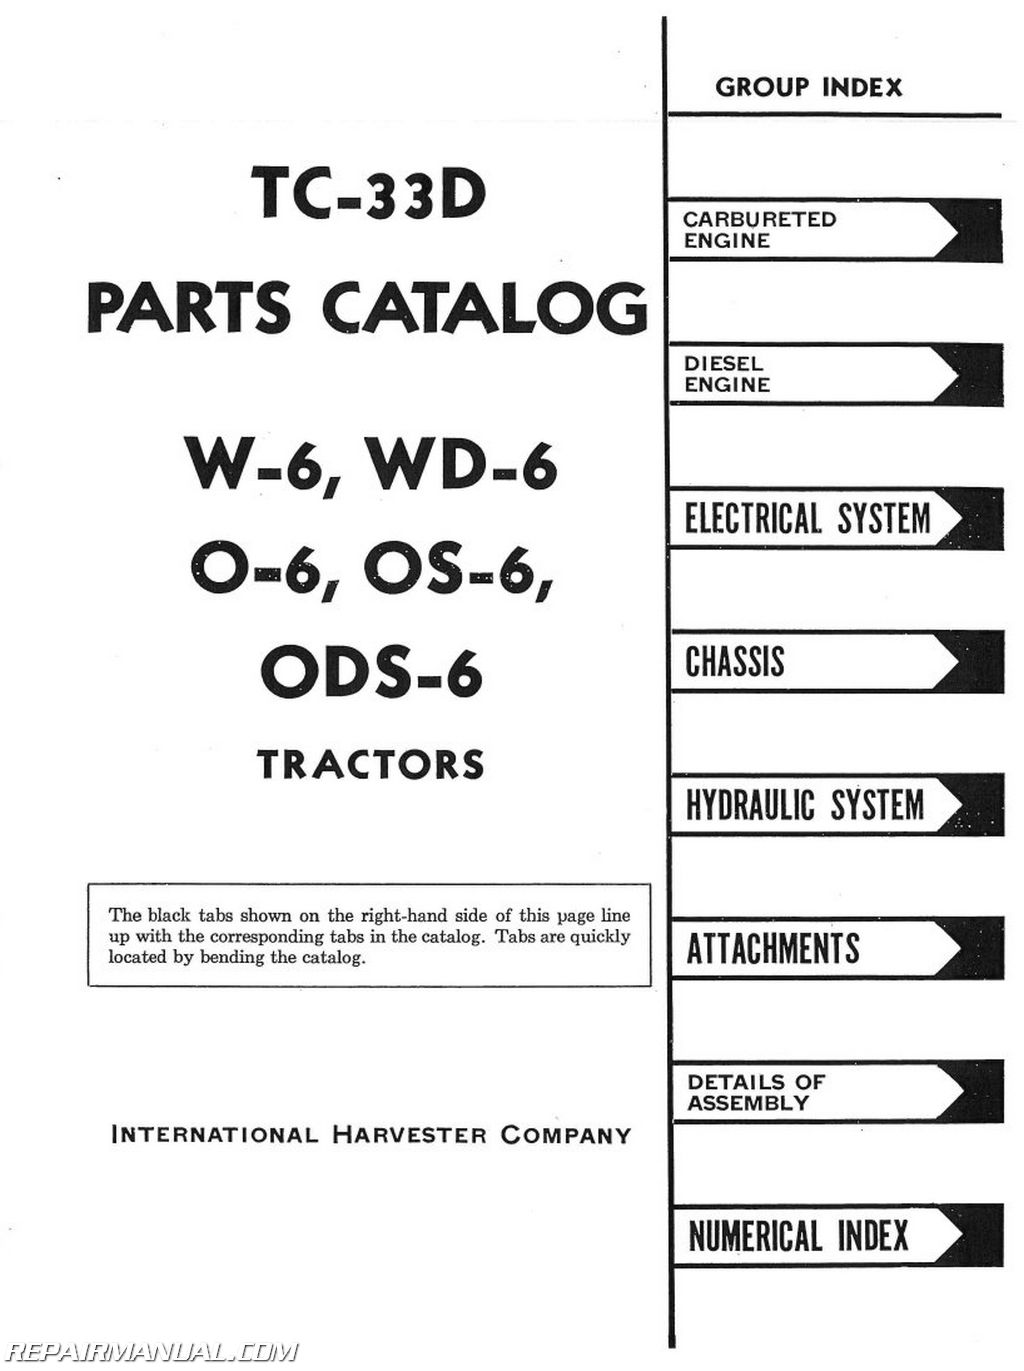 International Harvester O6 Os6 Ods6 W6 And Wd6 Parts